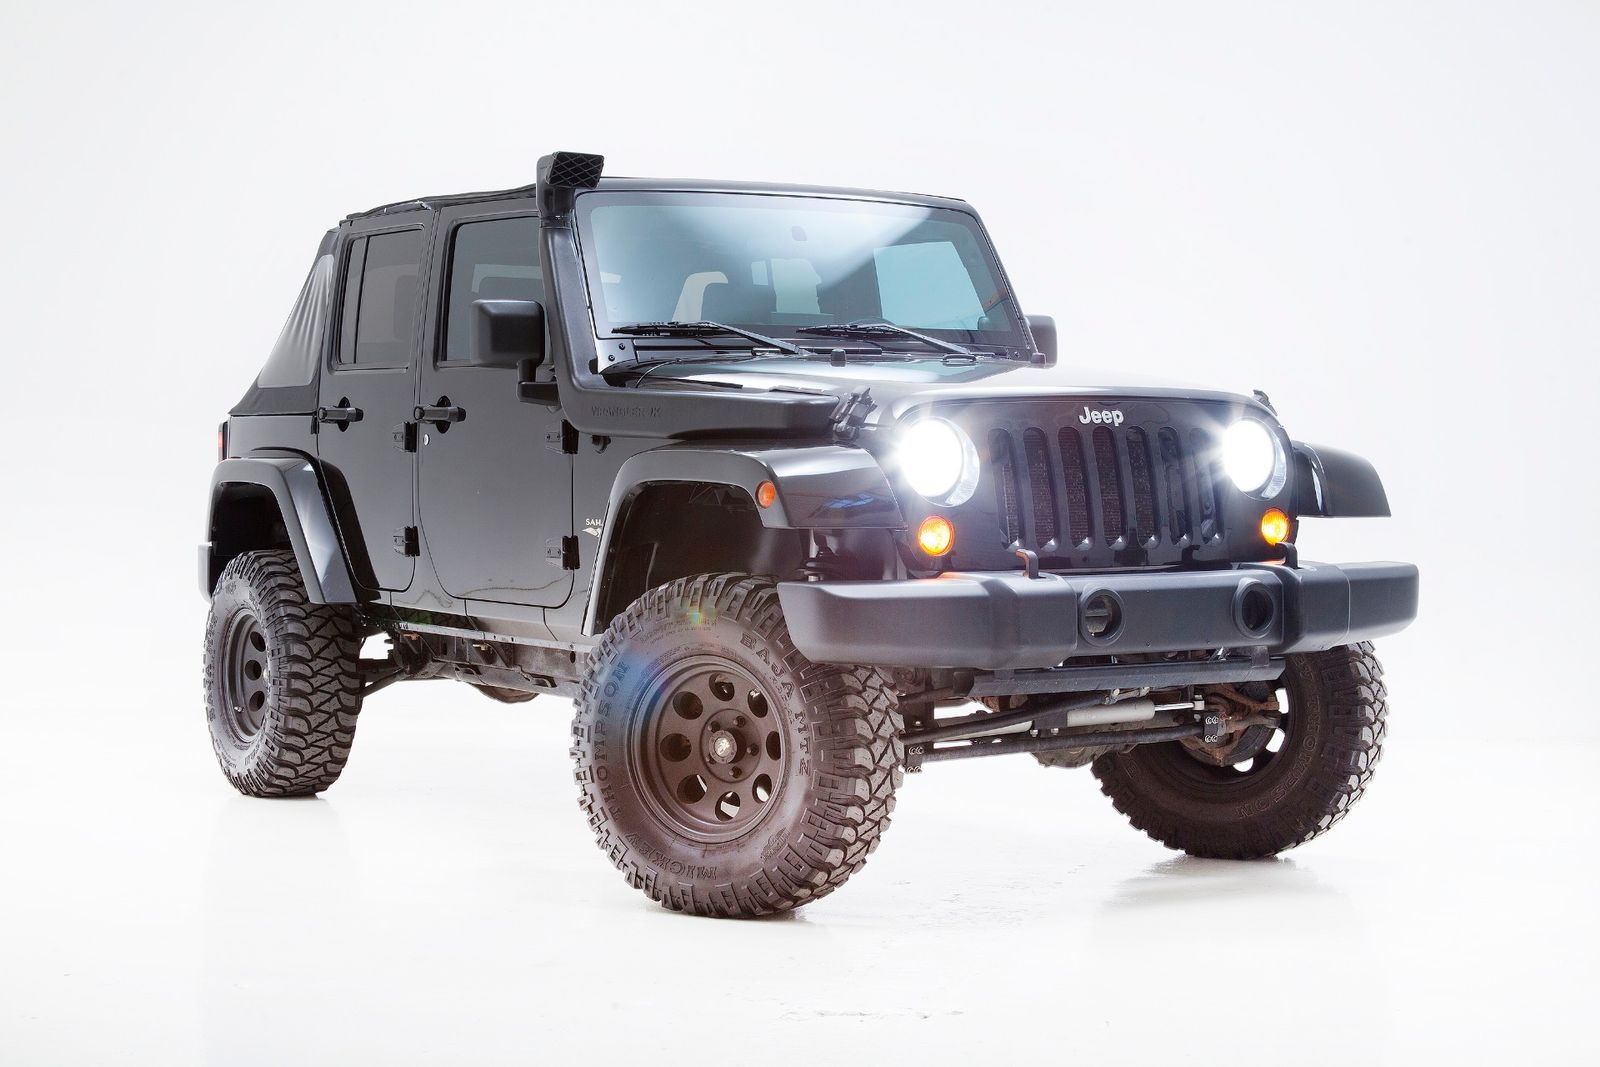 2008 jeep wrangler unlimited sahara lifted with many upgrades